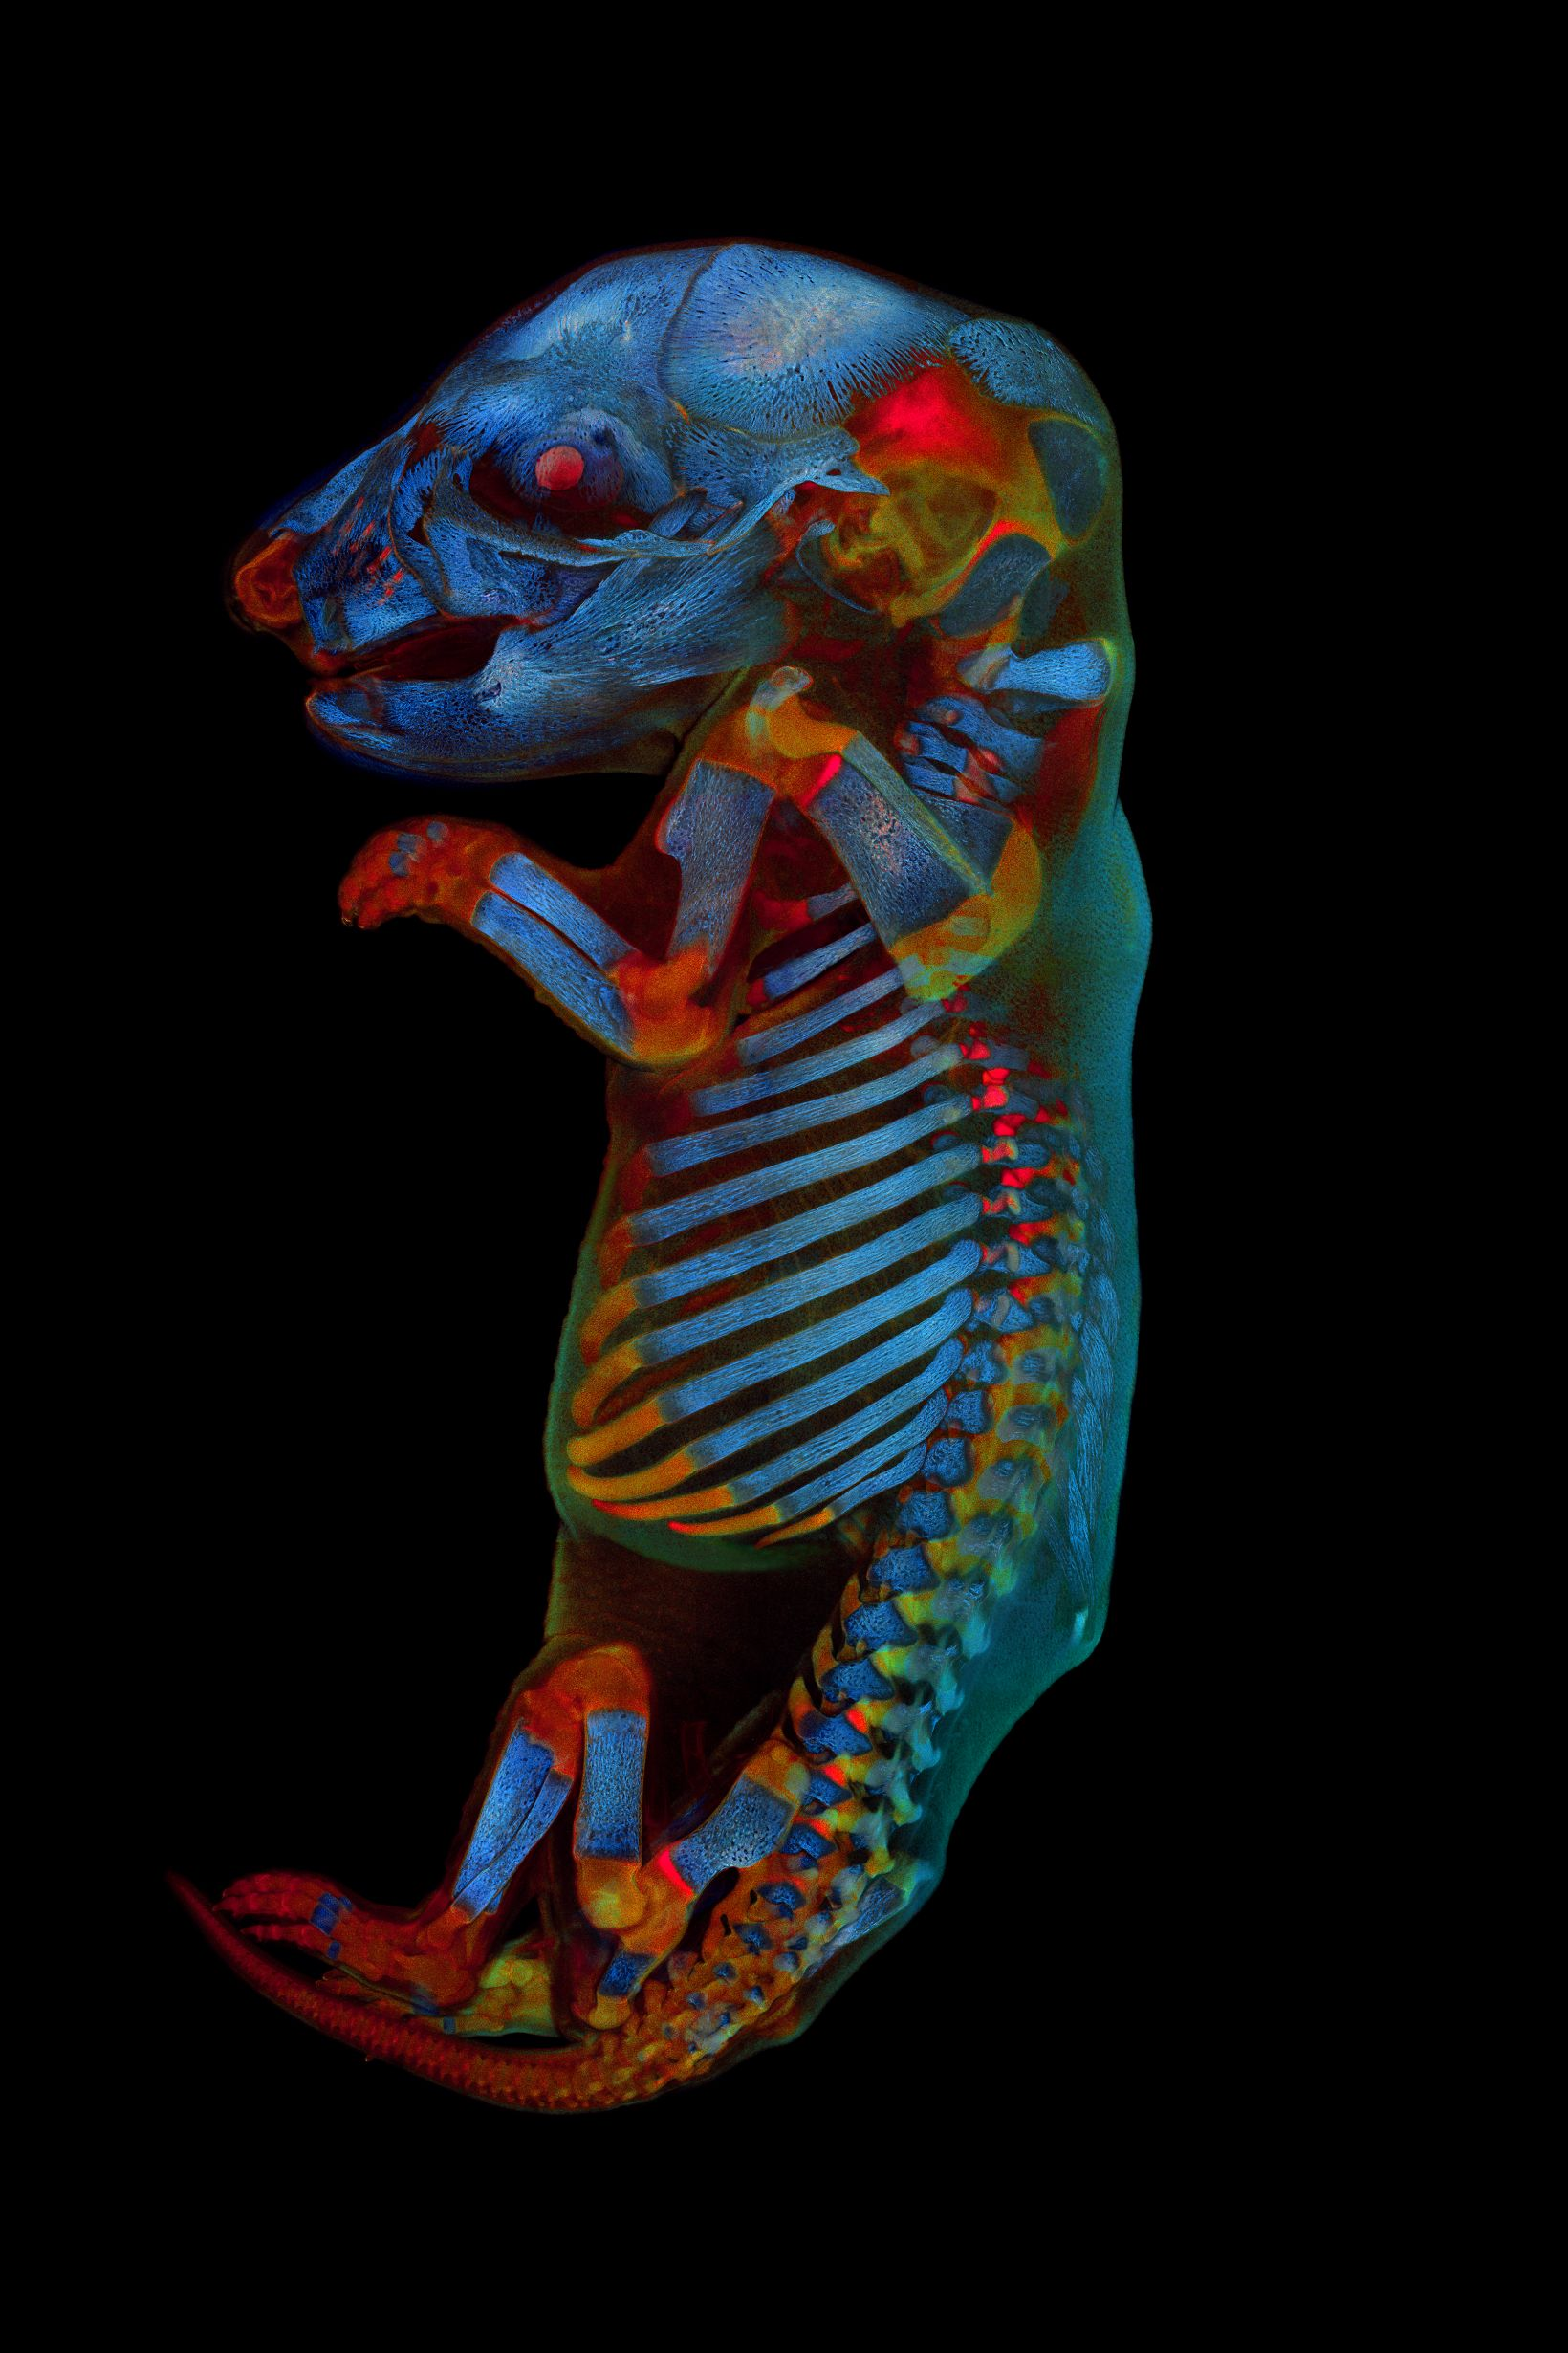 a whole rat embryo captured with a confocal microscope